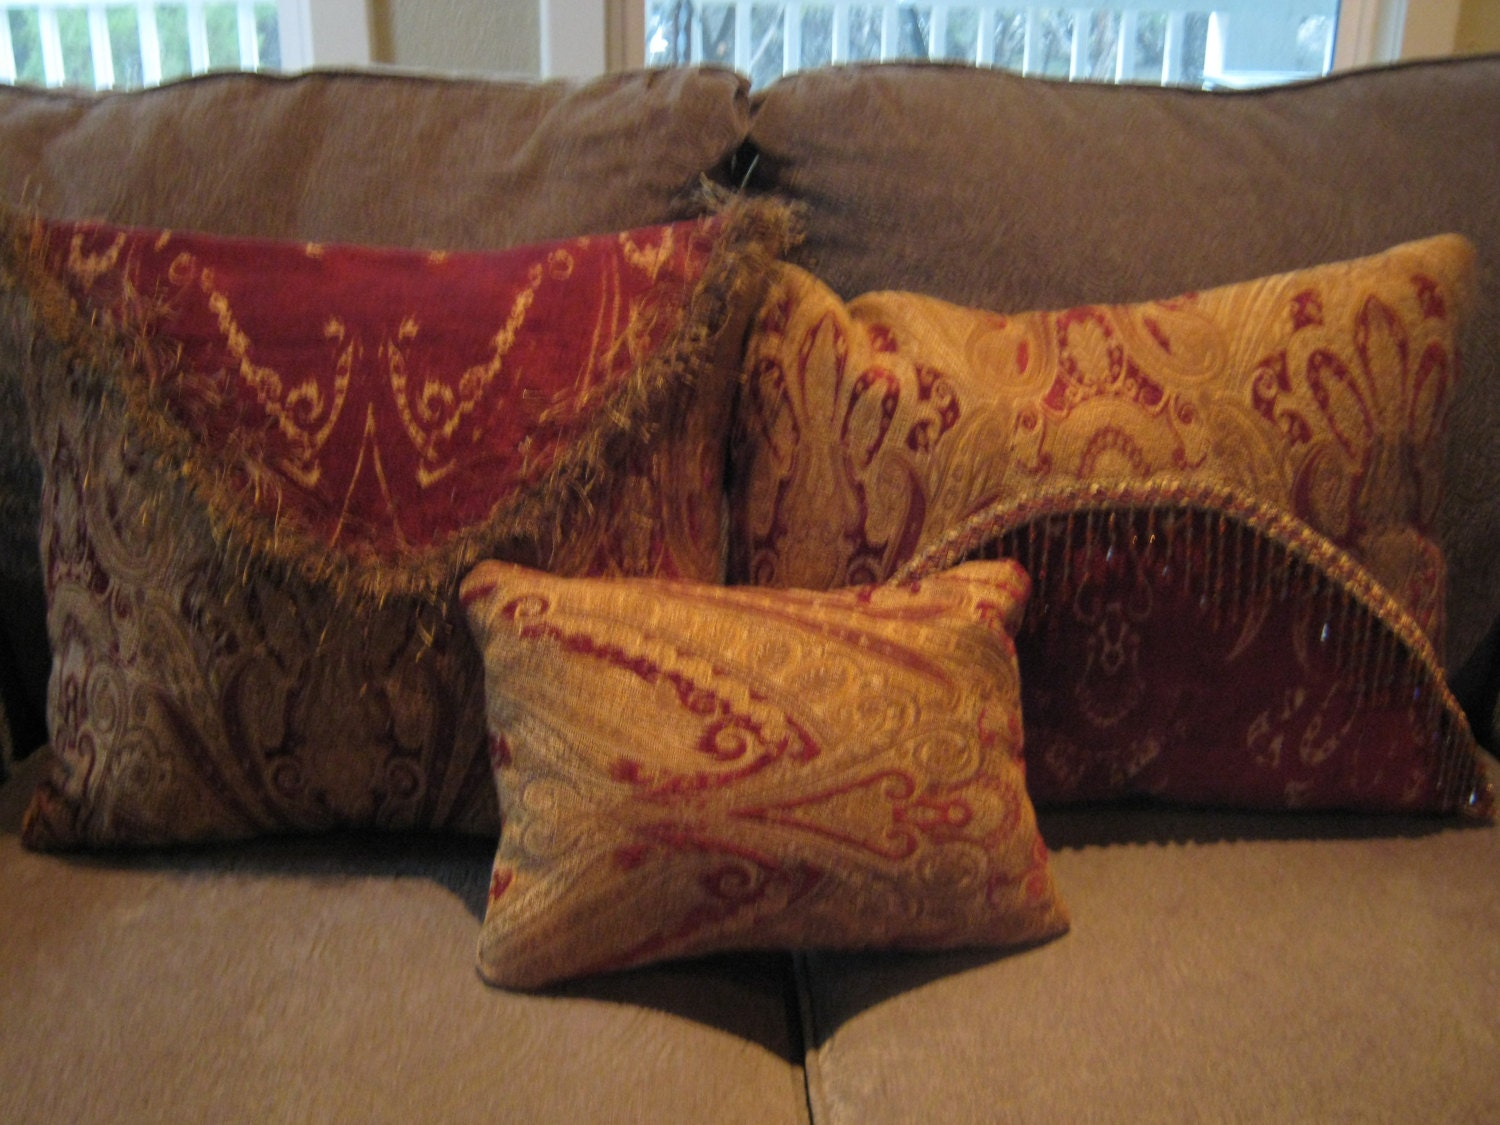 Throw Pillows Set Of 3 Home Decor For Bedroom Sofa Chair Couch ~ How To Coordinate Throw Pillows For Sofa And Chairs